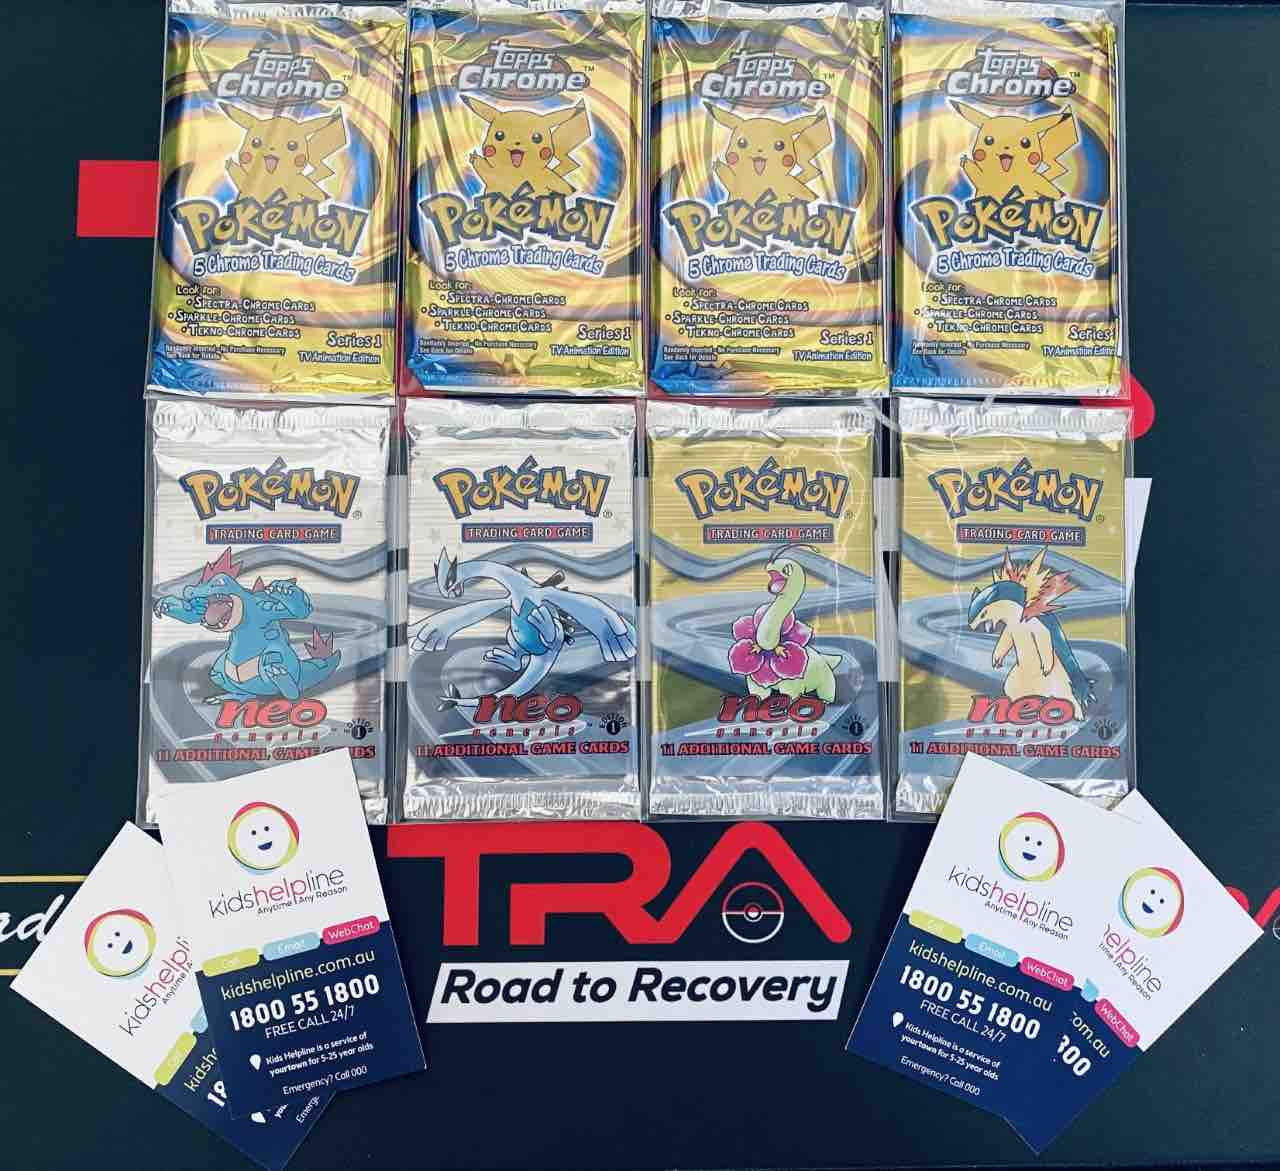 TRA Road To Recovery, Pokémon NEO Genesis Packs and Topps Chrome packs for our Kids Help Line Community Event image